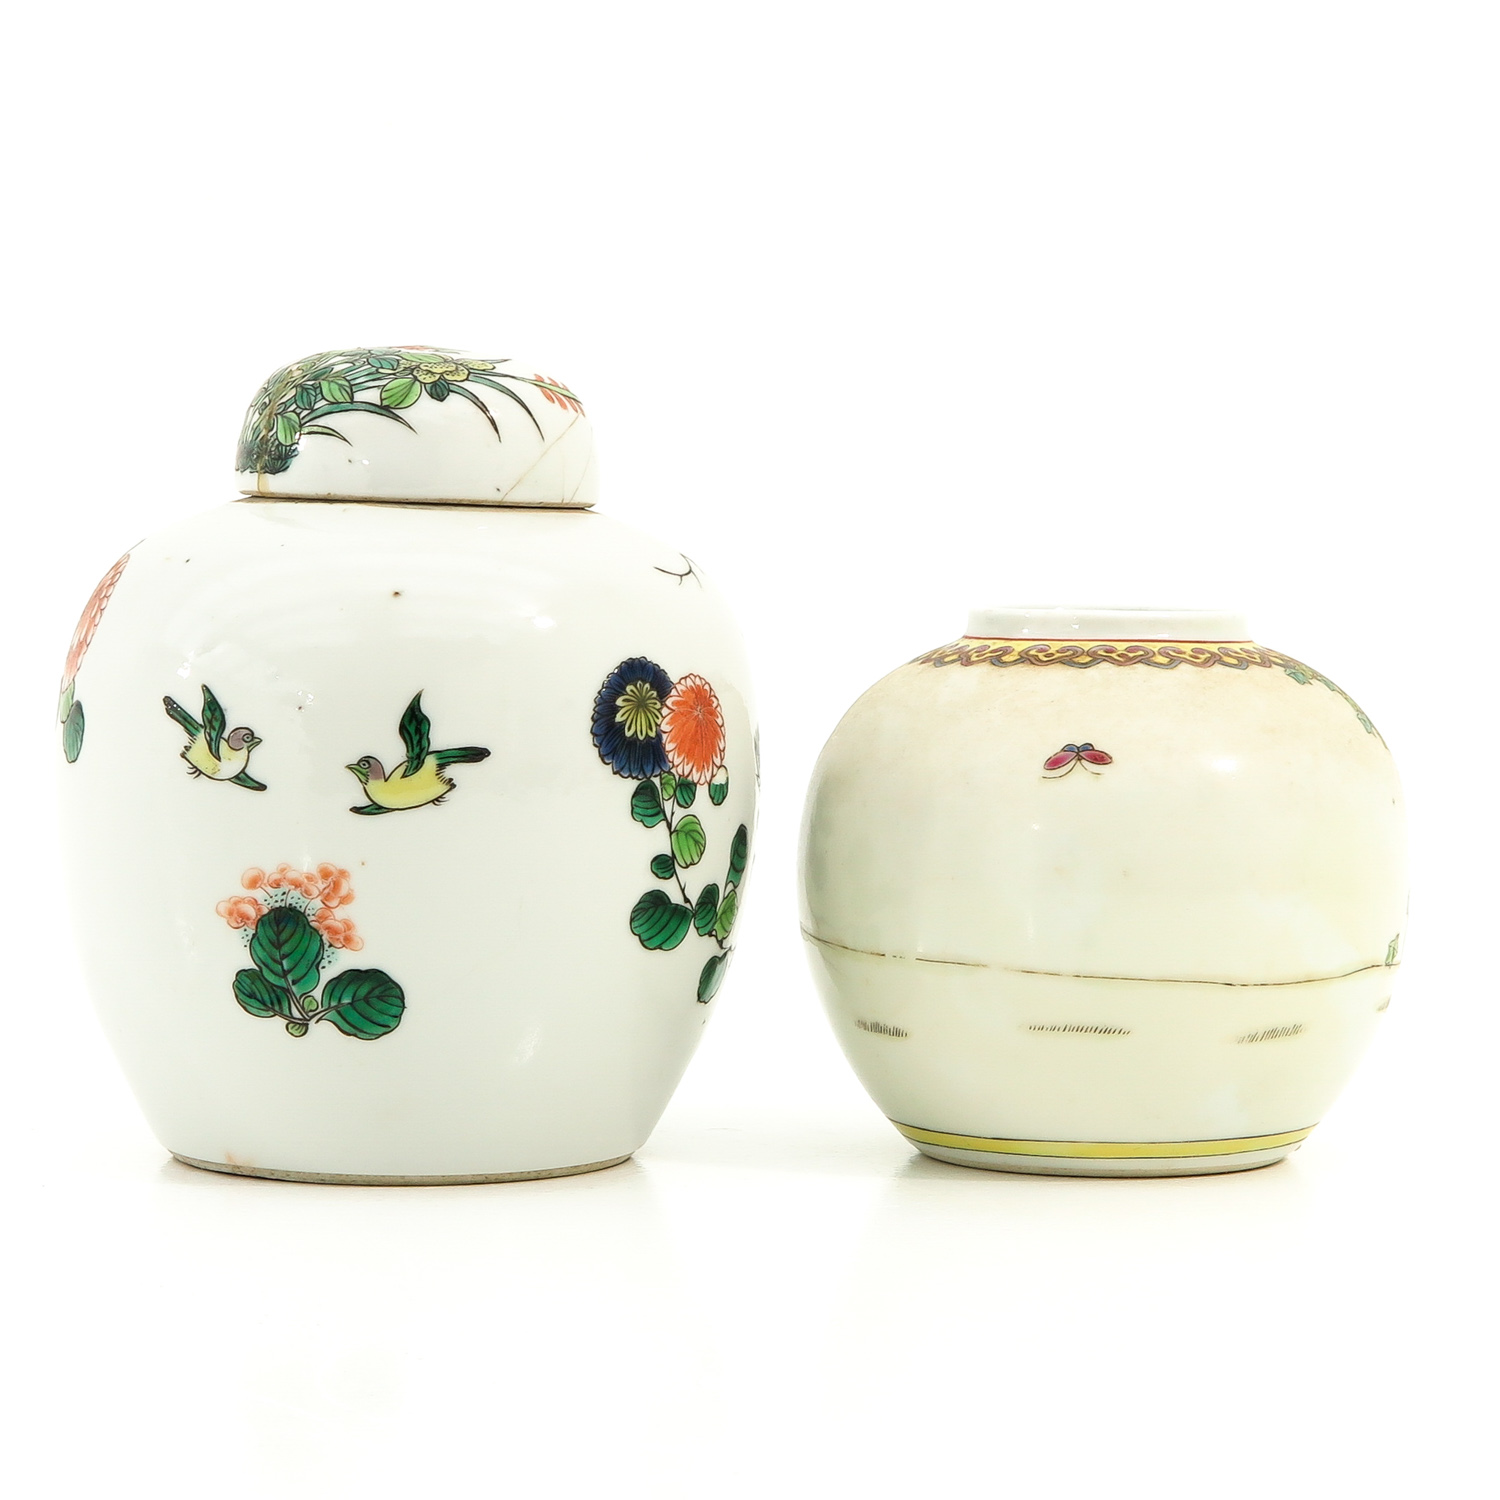 A Lot of 2 Ginger Jars - Image 3 of 9